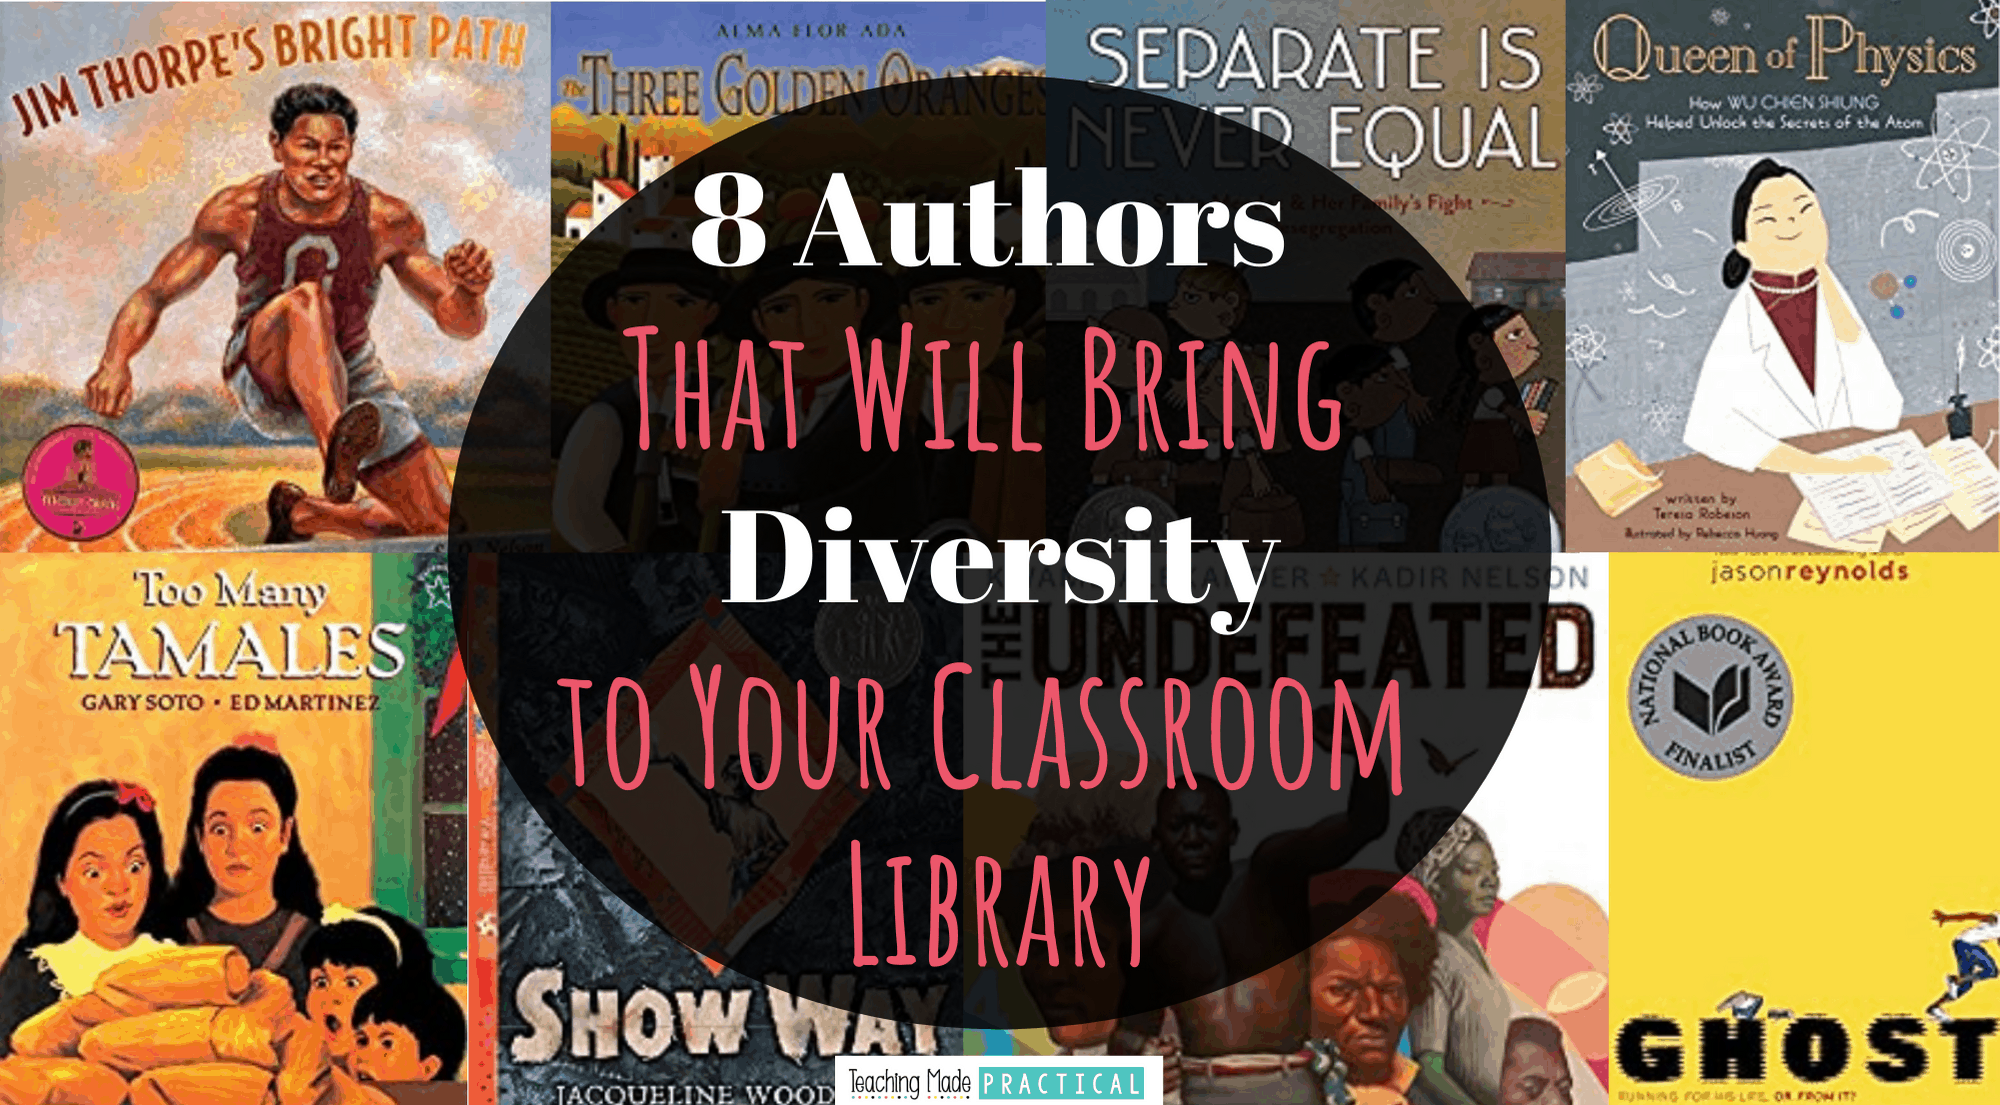 These 8 authors of color should be in every 3rd, 4th, and 5th classroom library